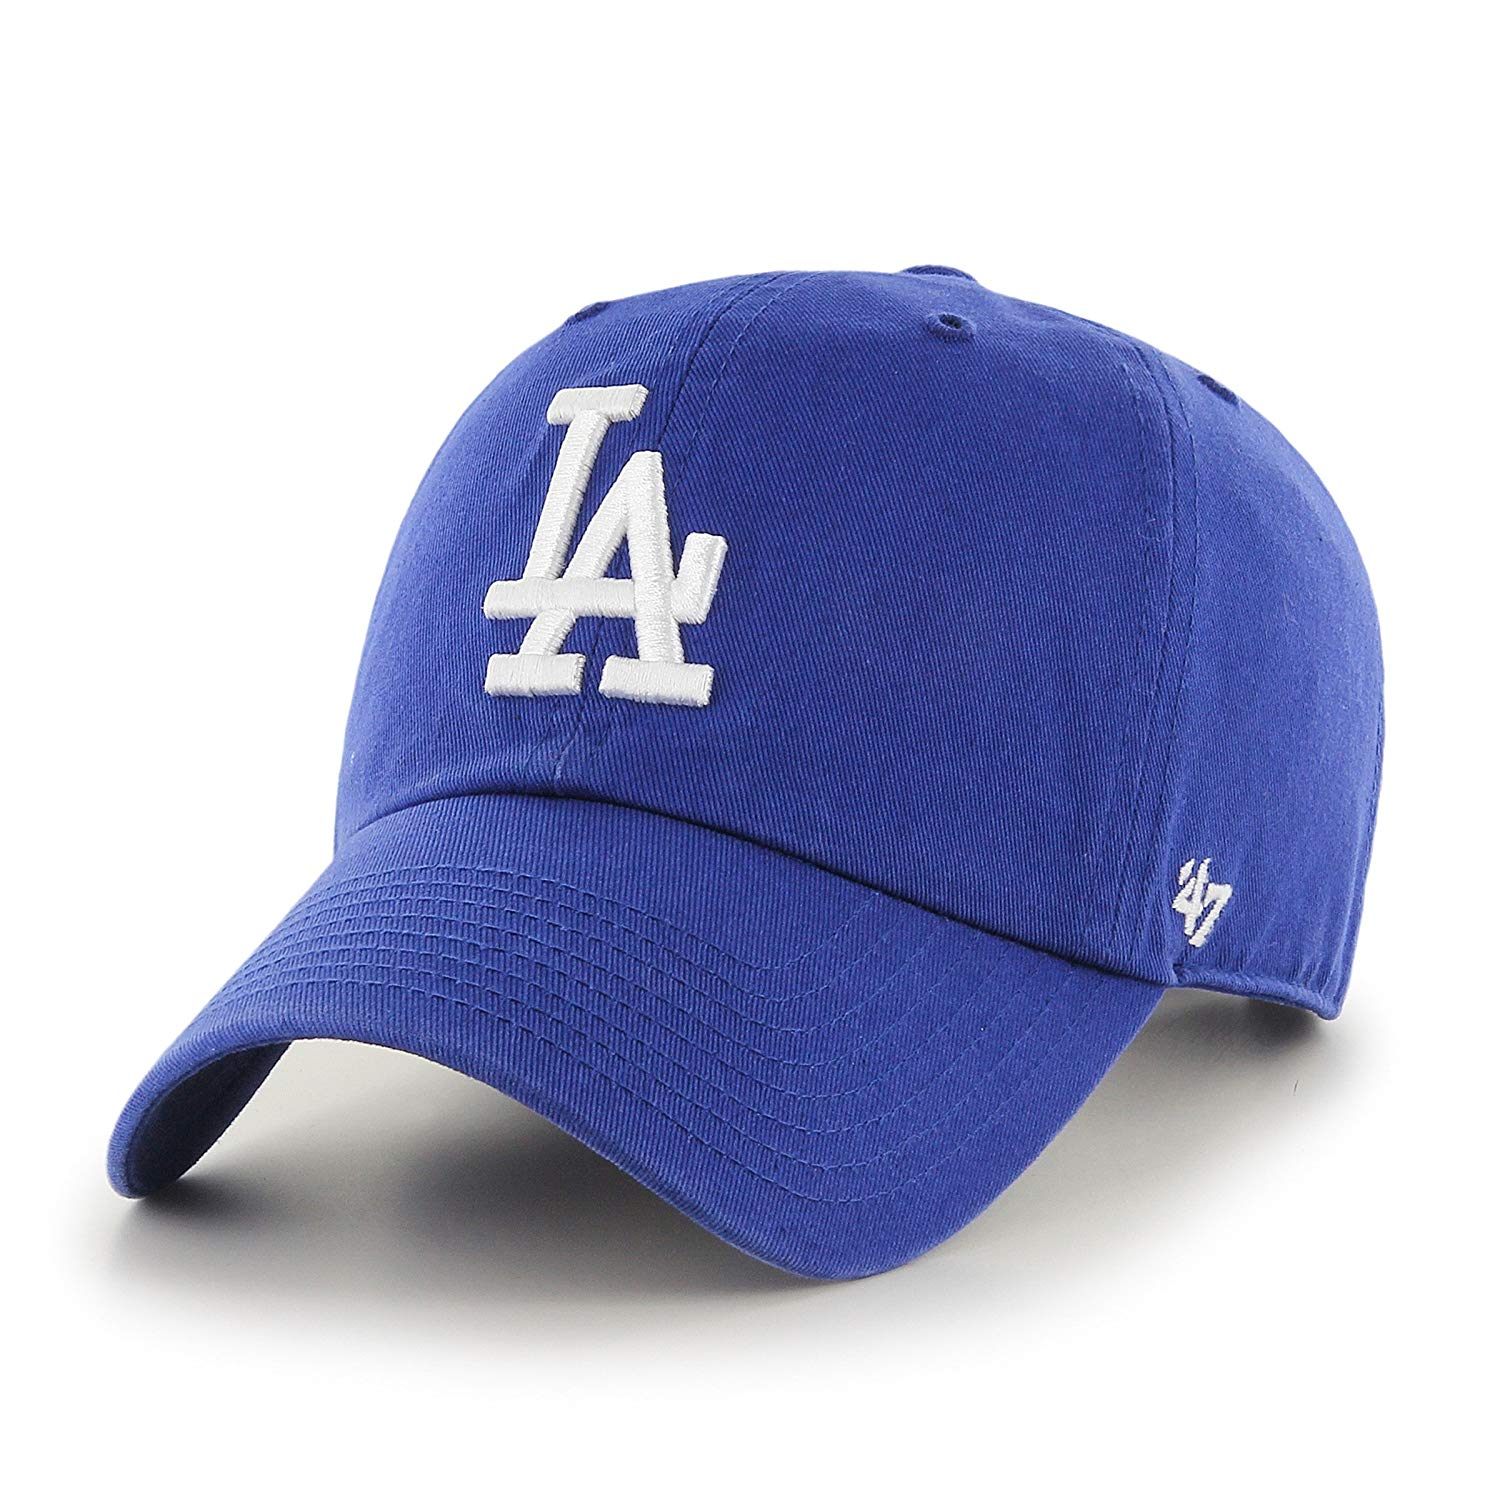 Women's '47 Clean Up La Dodgers Baseball Cap - Blue